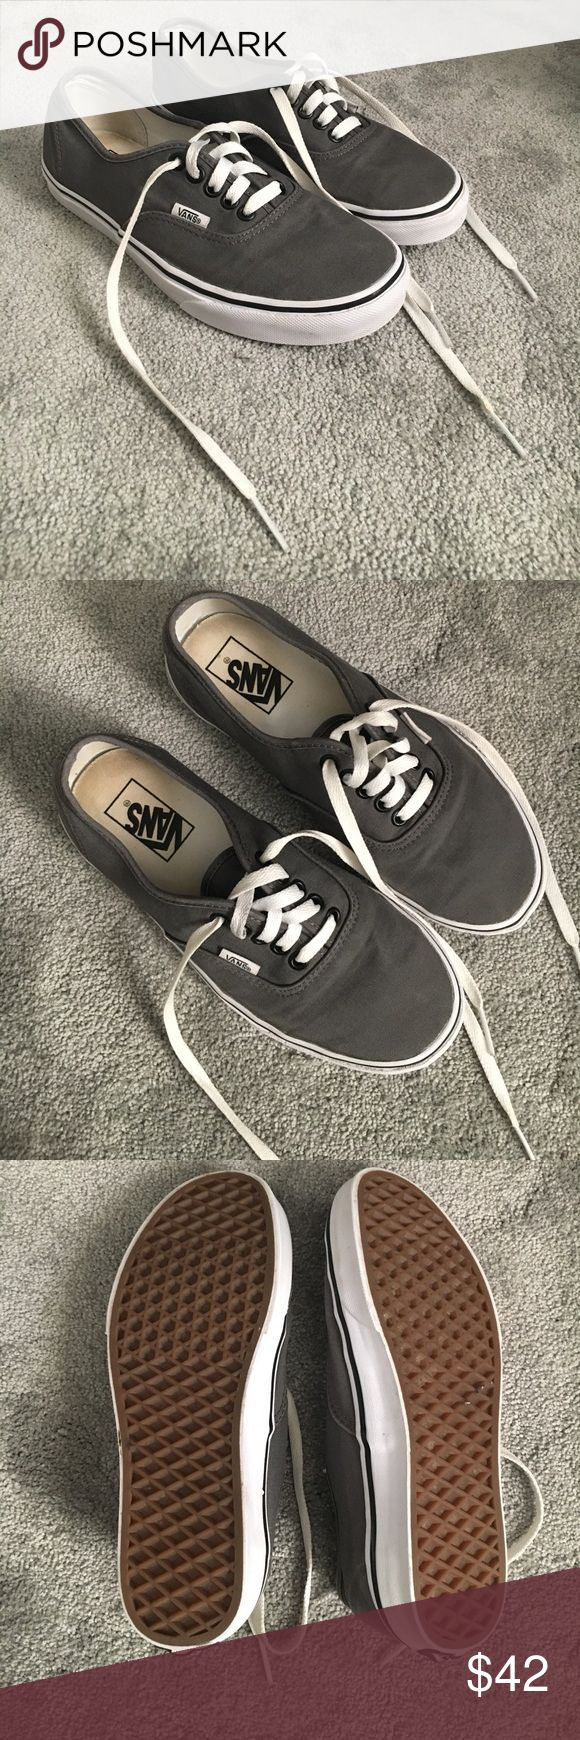 VANS canvas shoes Only worn a couple of times. Spray tan stain inside but not visible when wearing. Have washed them & they do not stink. They look brand new on the outside. Excellent condition!! Men's size 6.5. Women's size 8. Vans Shoes Sneakers